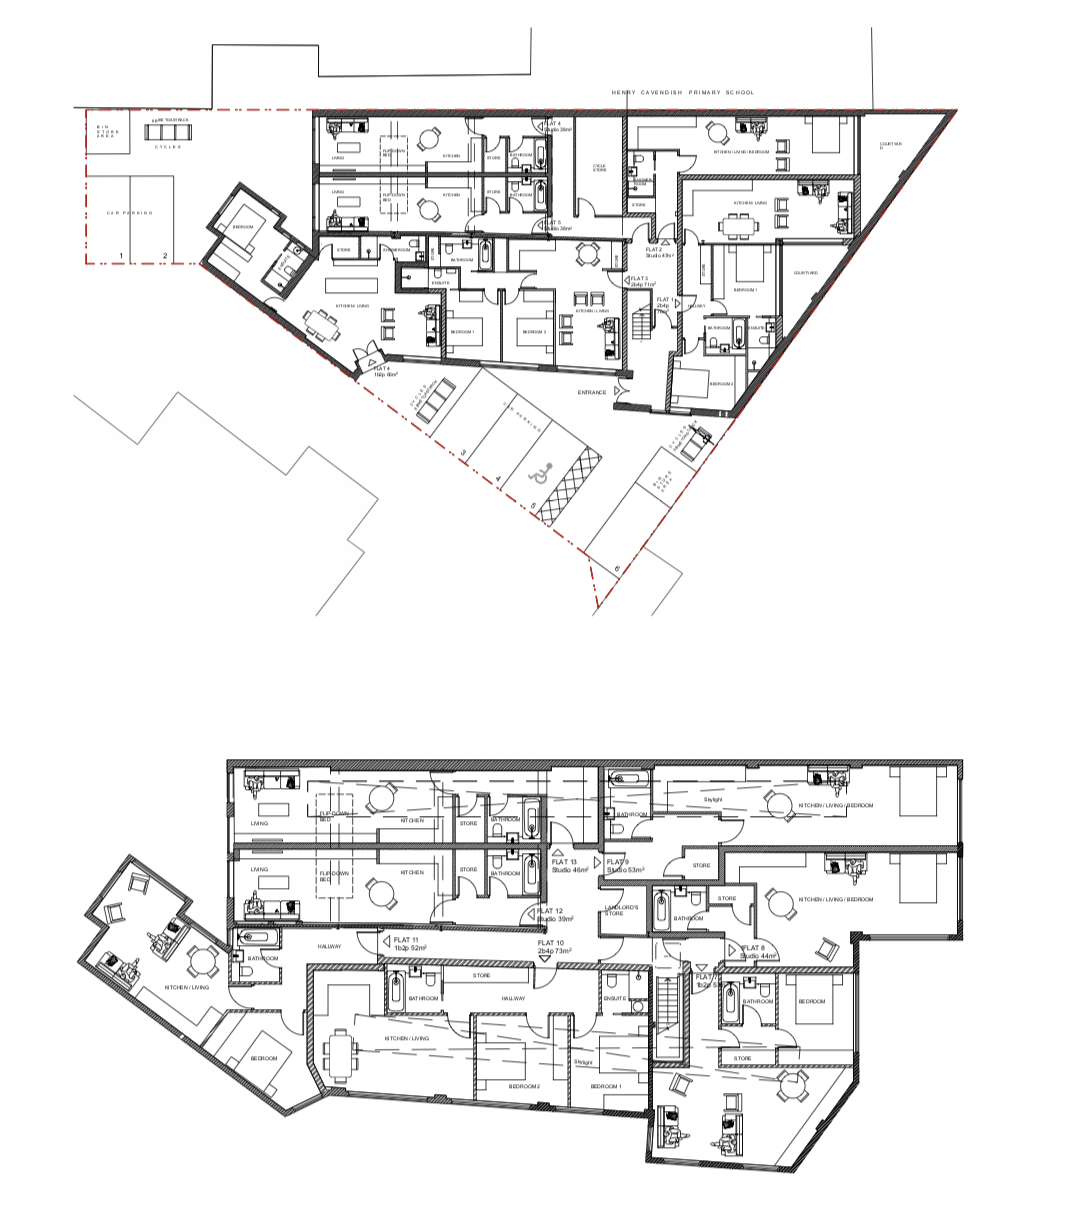 Plans show 13 studio flats, four with windows onto a lightwell, and four with no windows at all